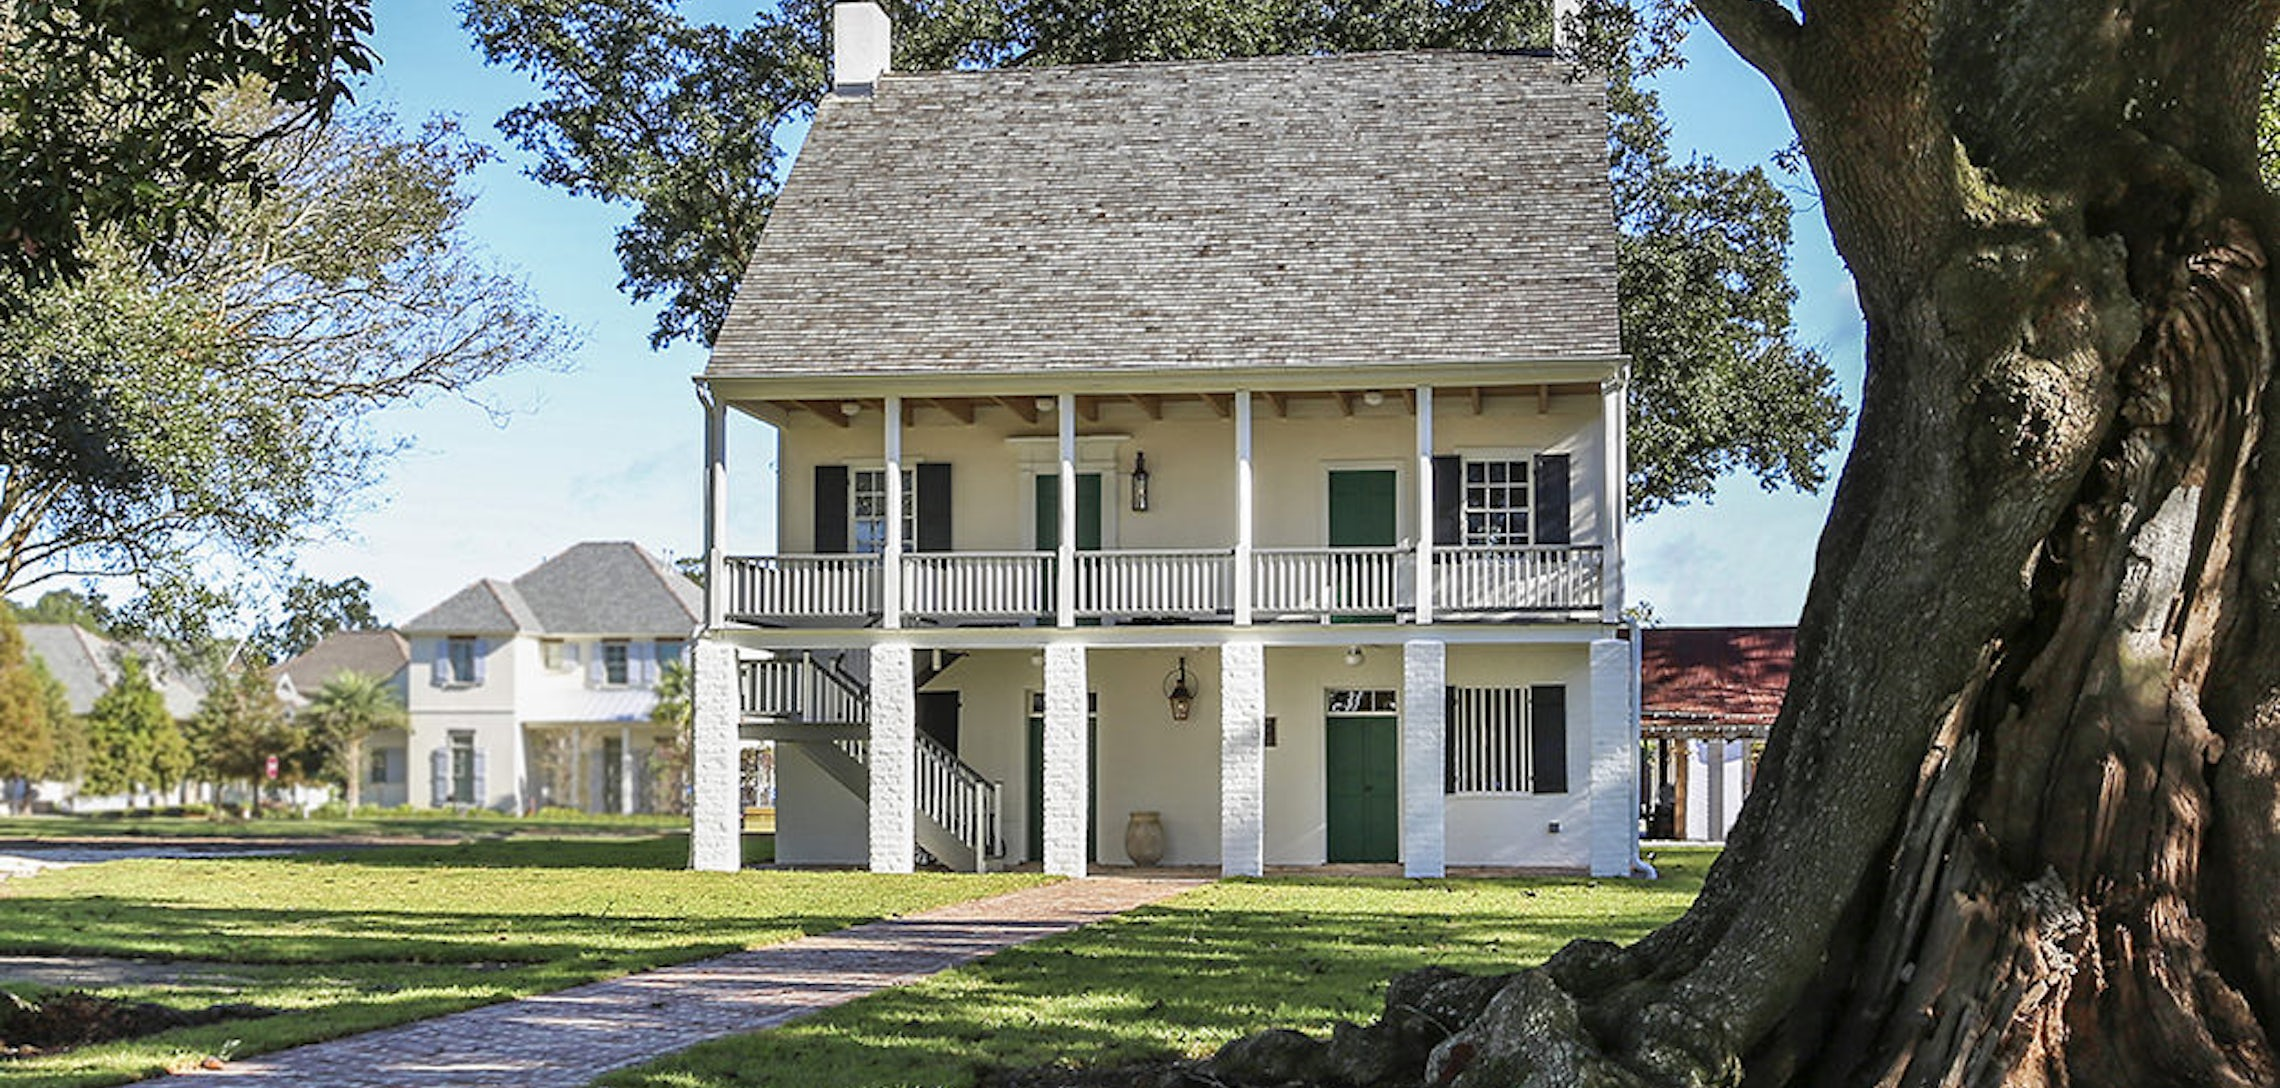 Restoring A Landmark The Kleinpeter House At The Settlement At